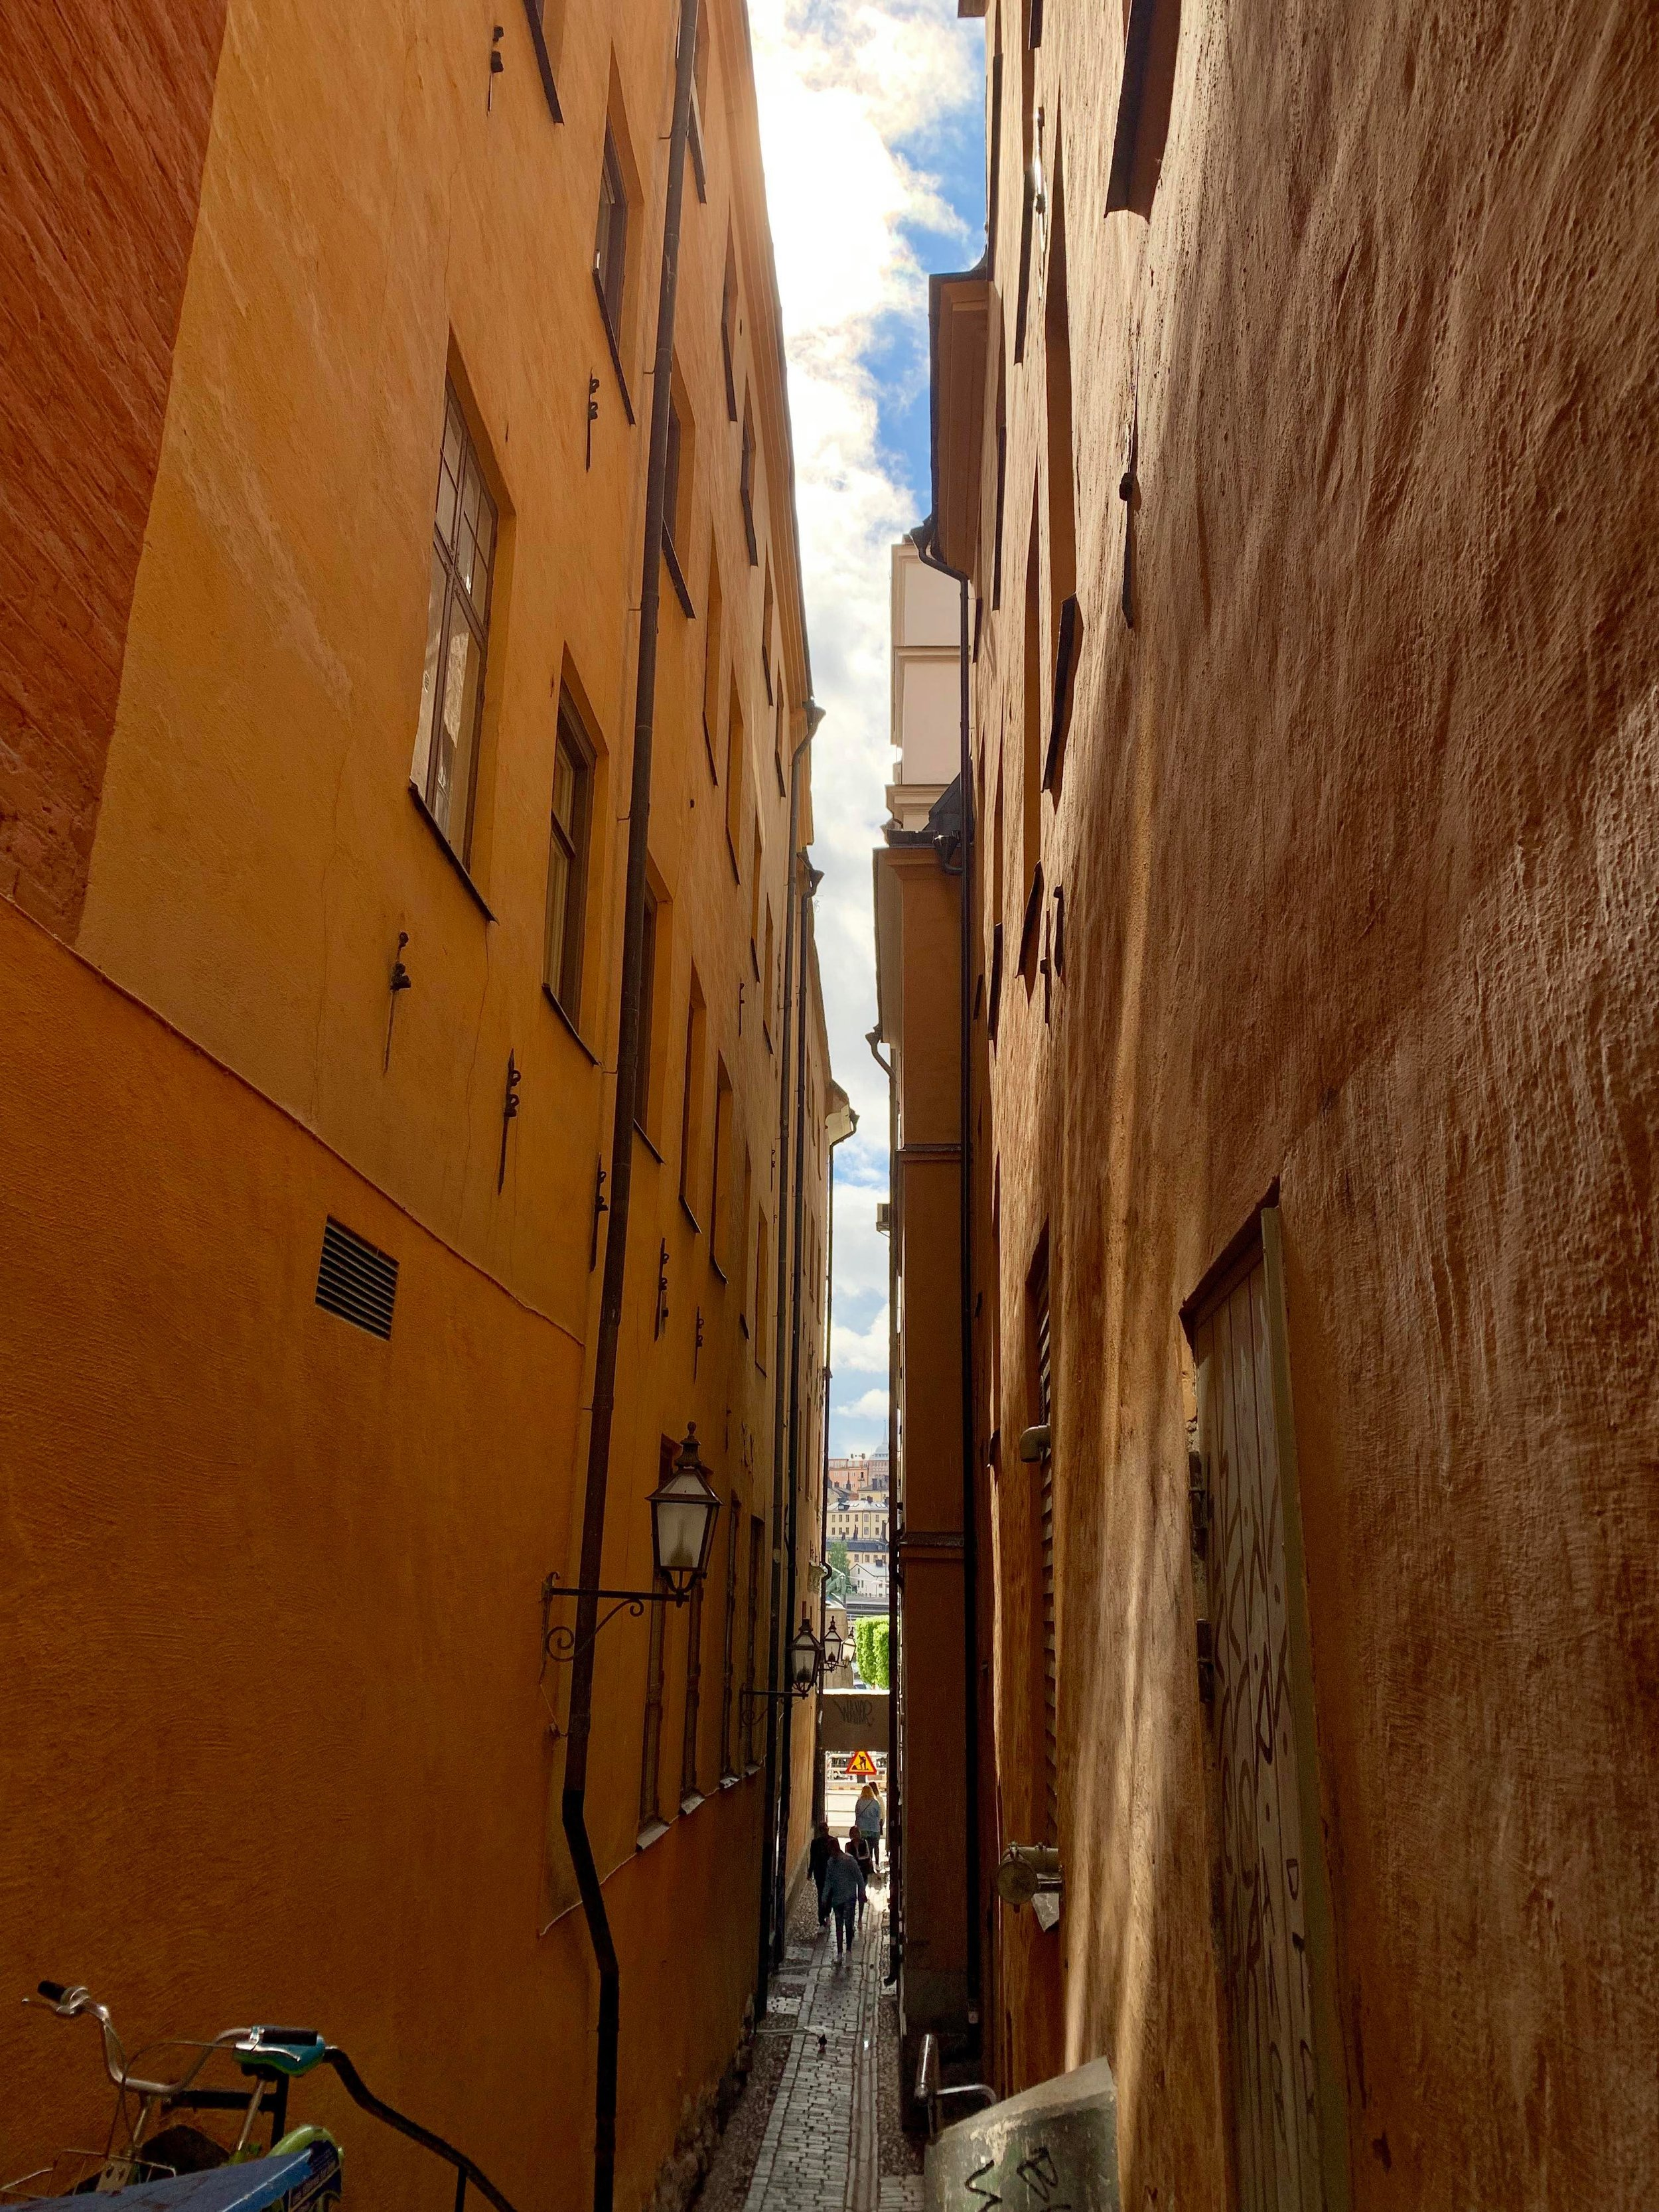 Aside from alleys… - Things to see in old town include: the Stockholm Cathedral, the Nobel Museum, the Riddarholm church, and Sweden's Royal Palace.